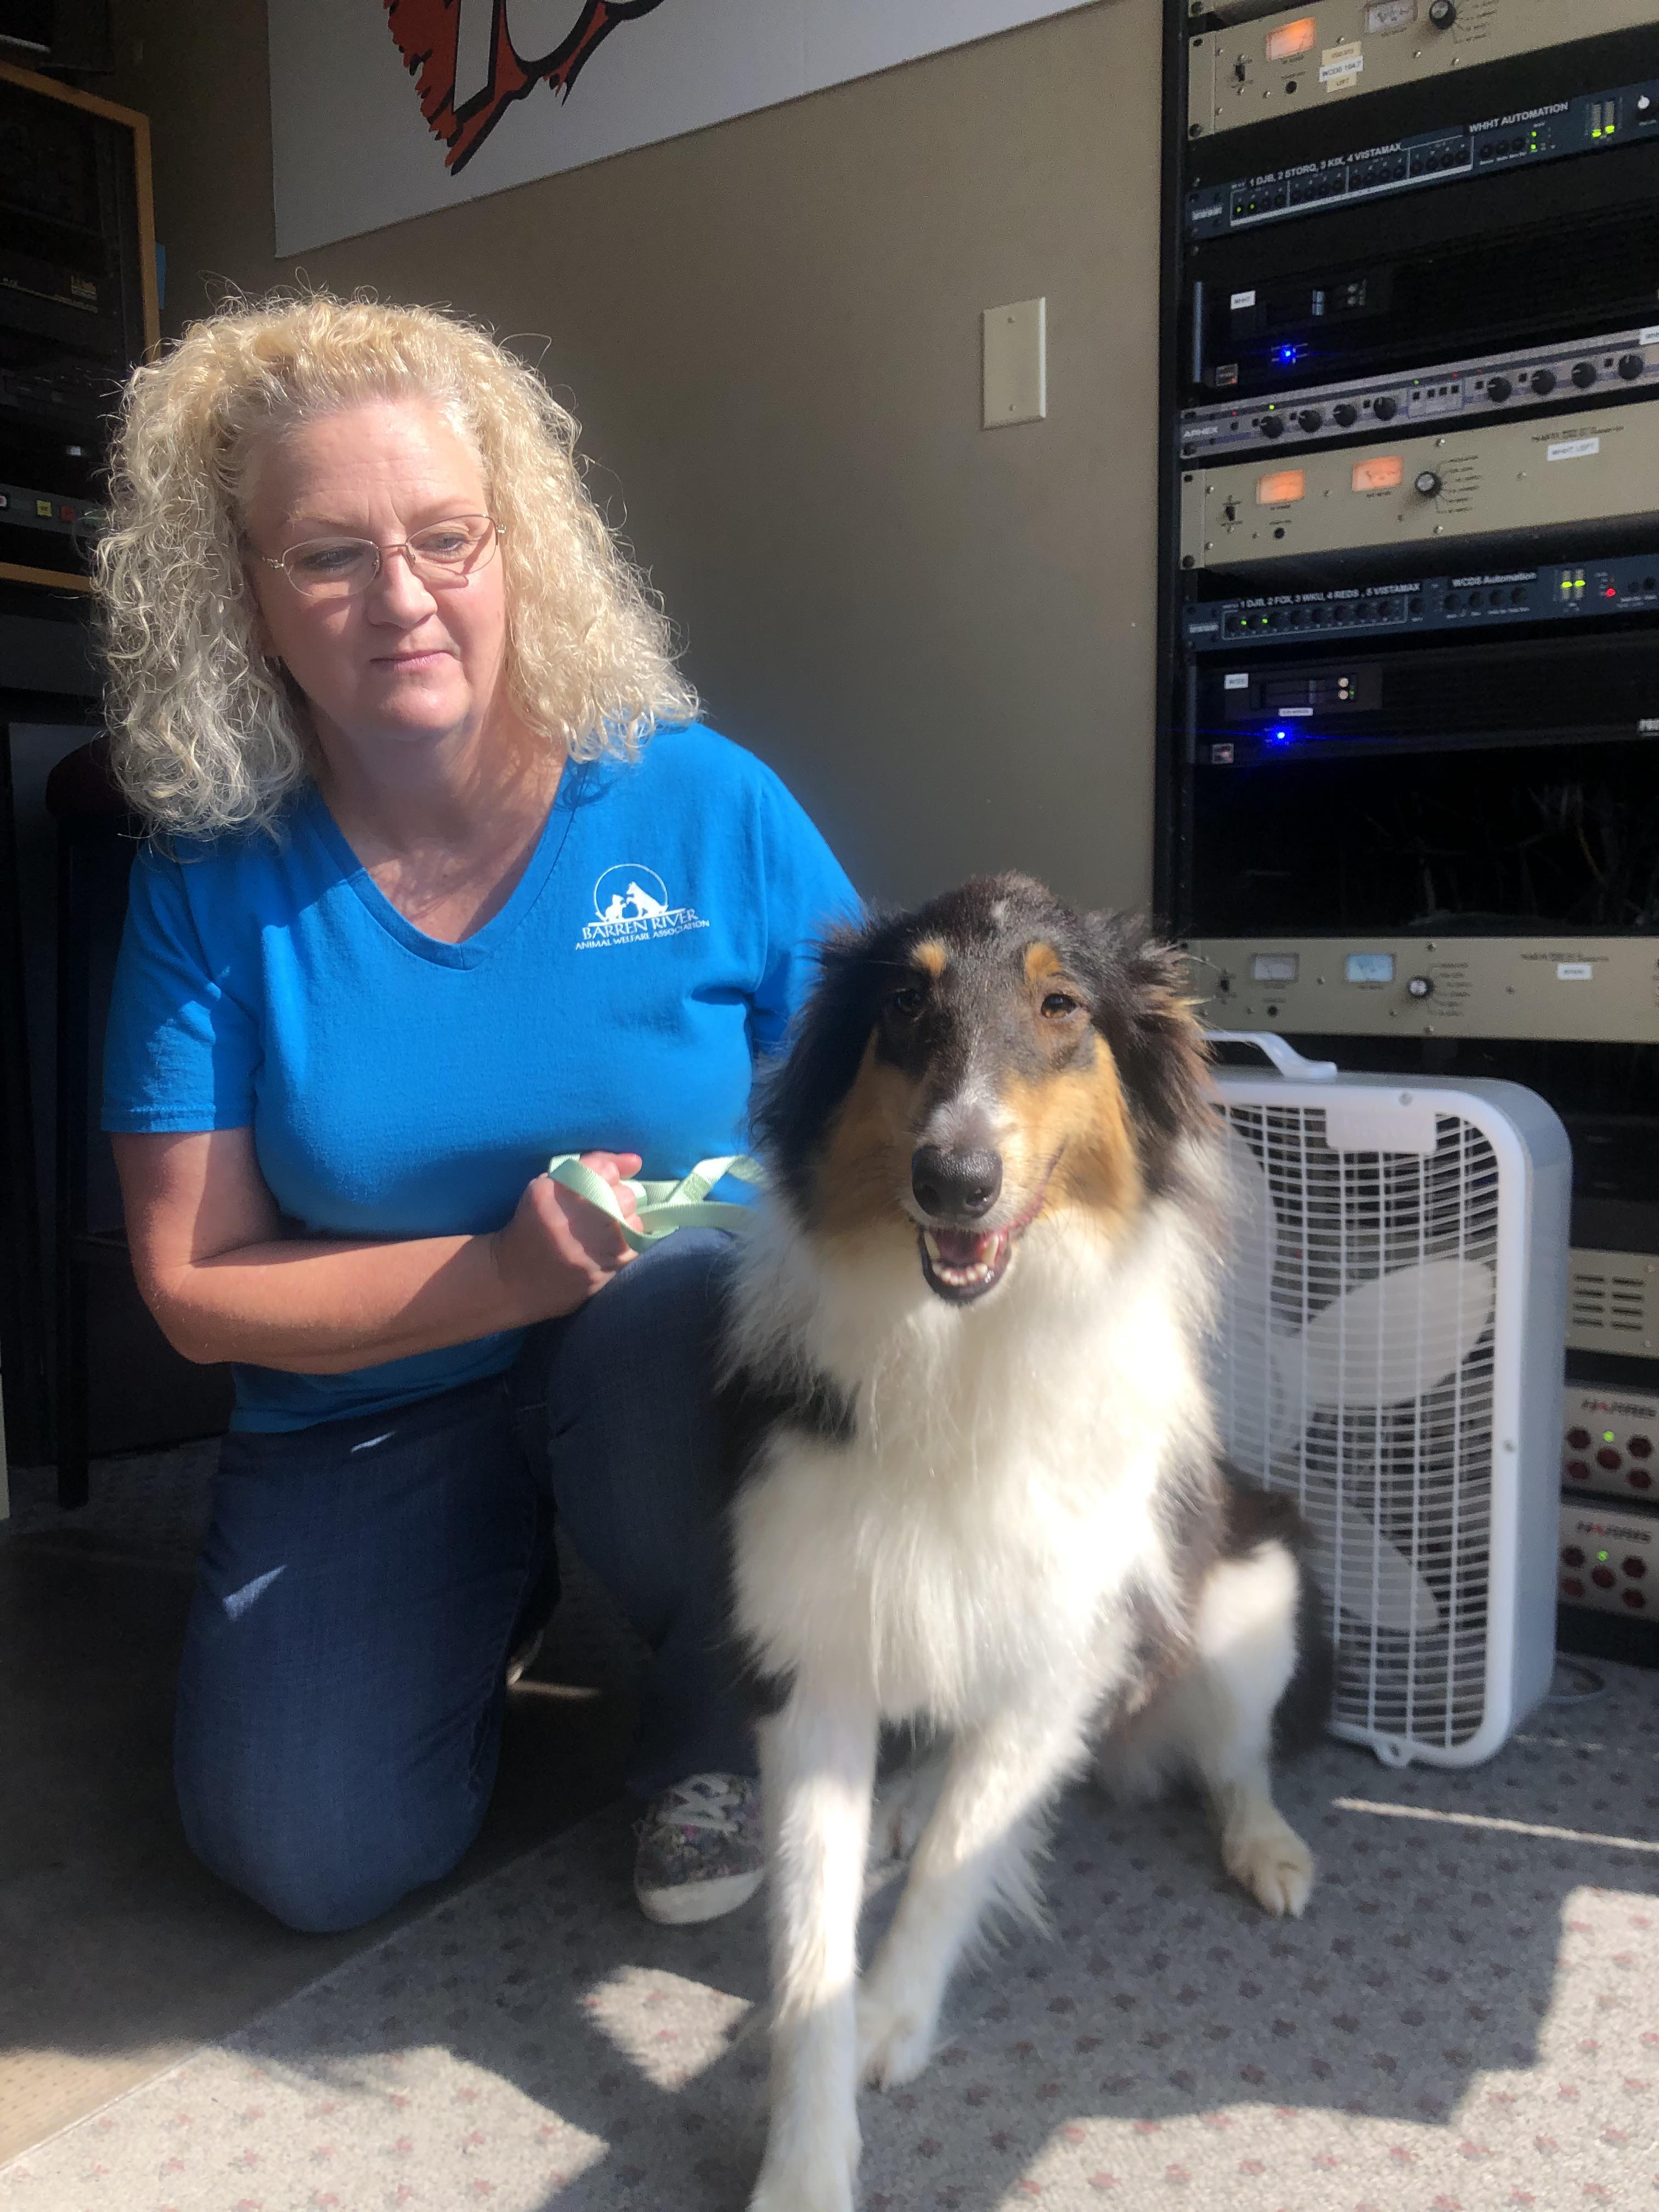 PETS & PAWS: Meet Missy and learn about Paw Ball